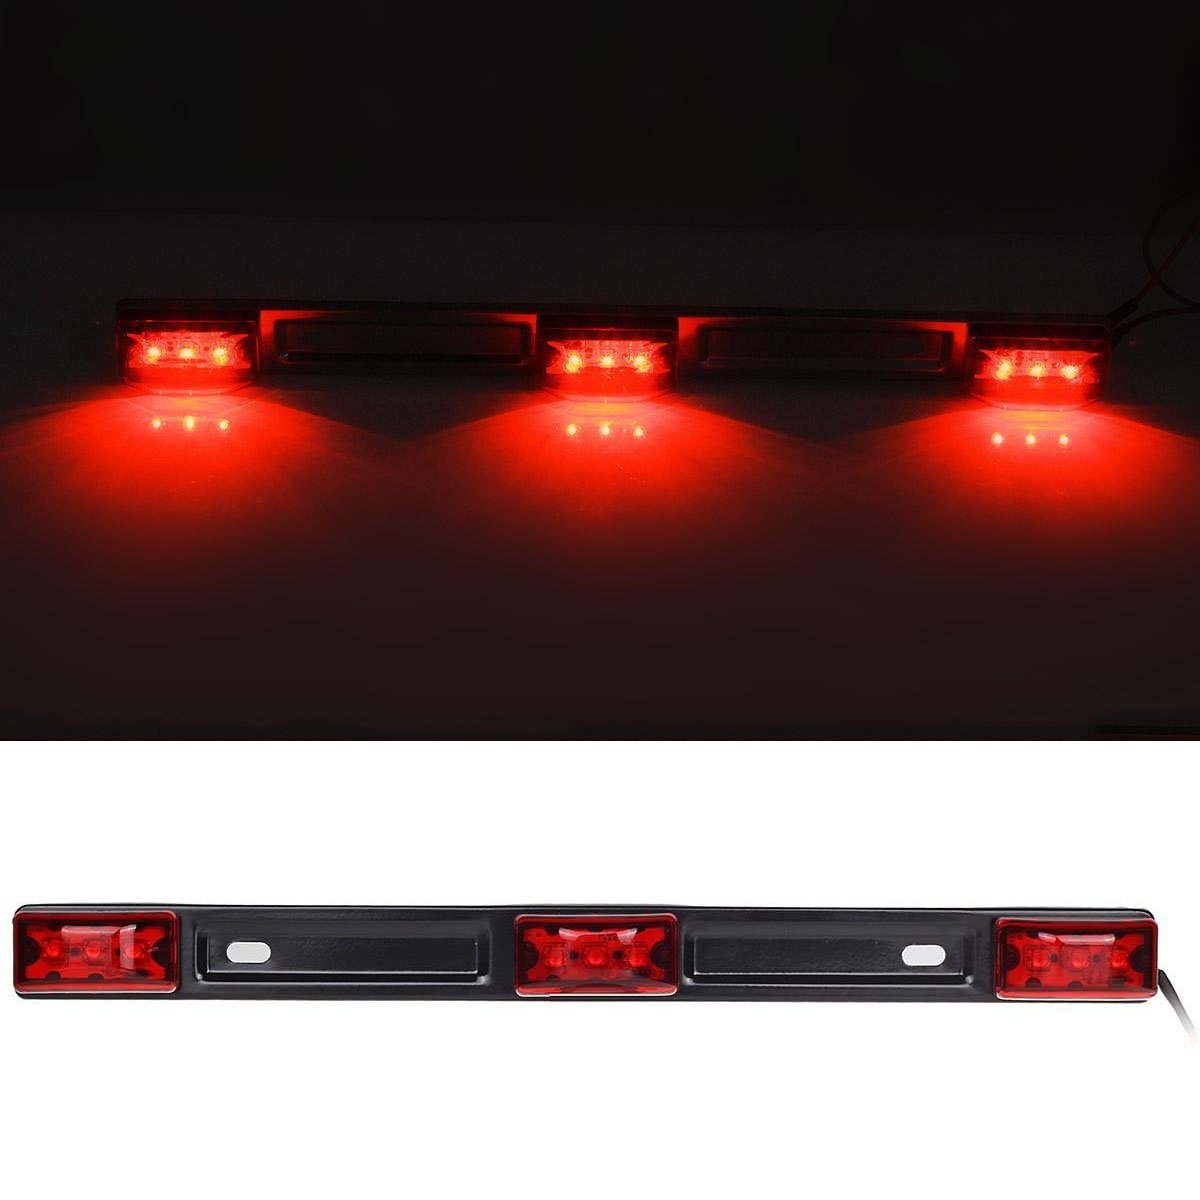 Partszone 3 Light 9 LED Trailer Sealed Stainless Steel Red Clearance ID BAR Marker Light